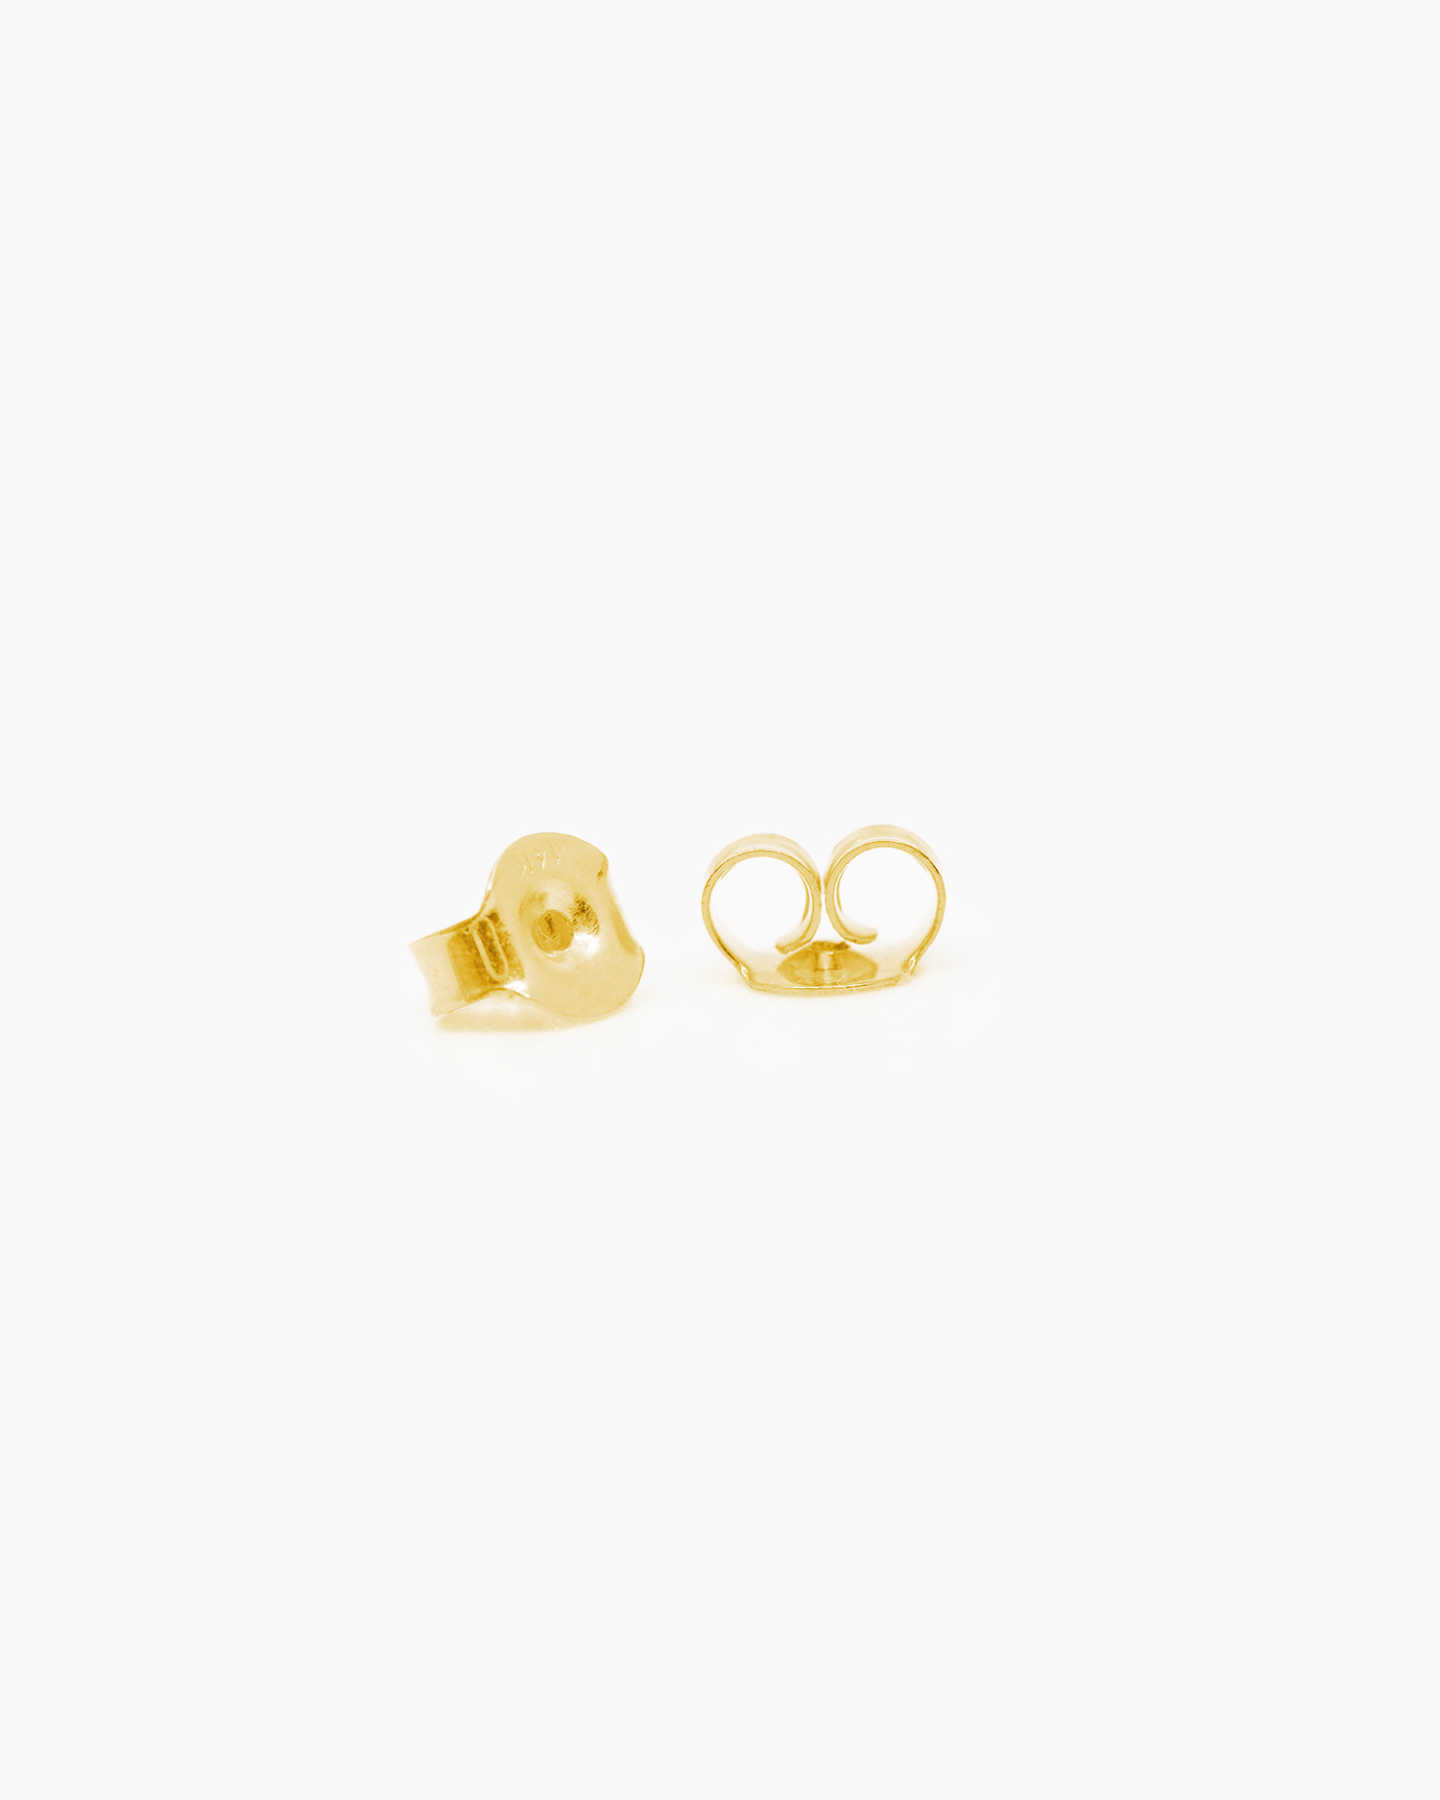 Freshwater Cultured Pearl Stud Earrings - Yellow Gold - 2